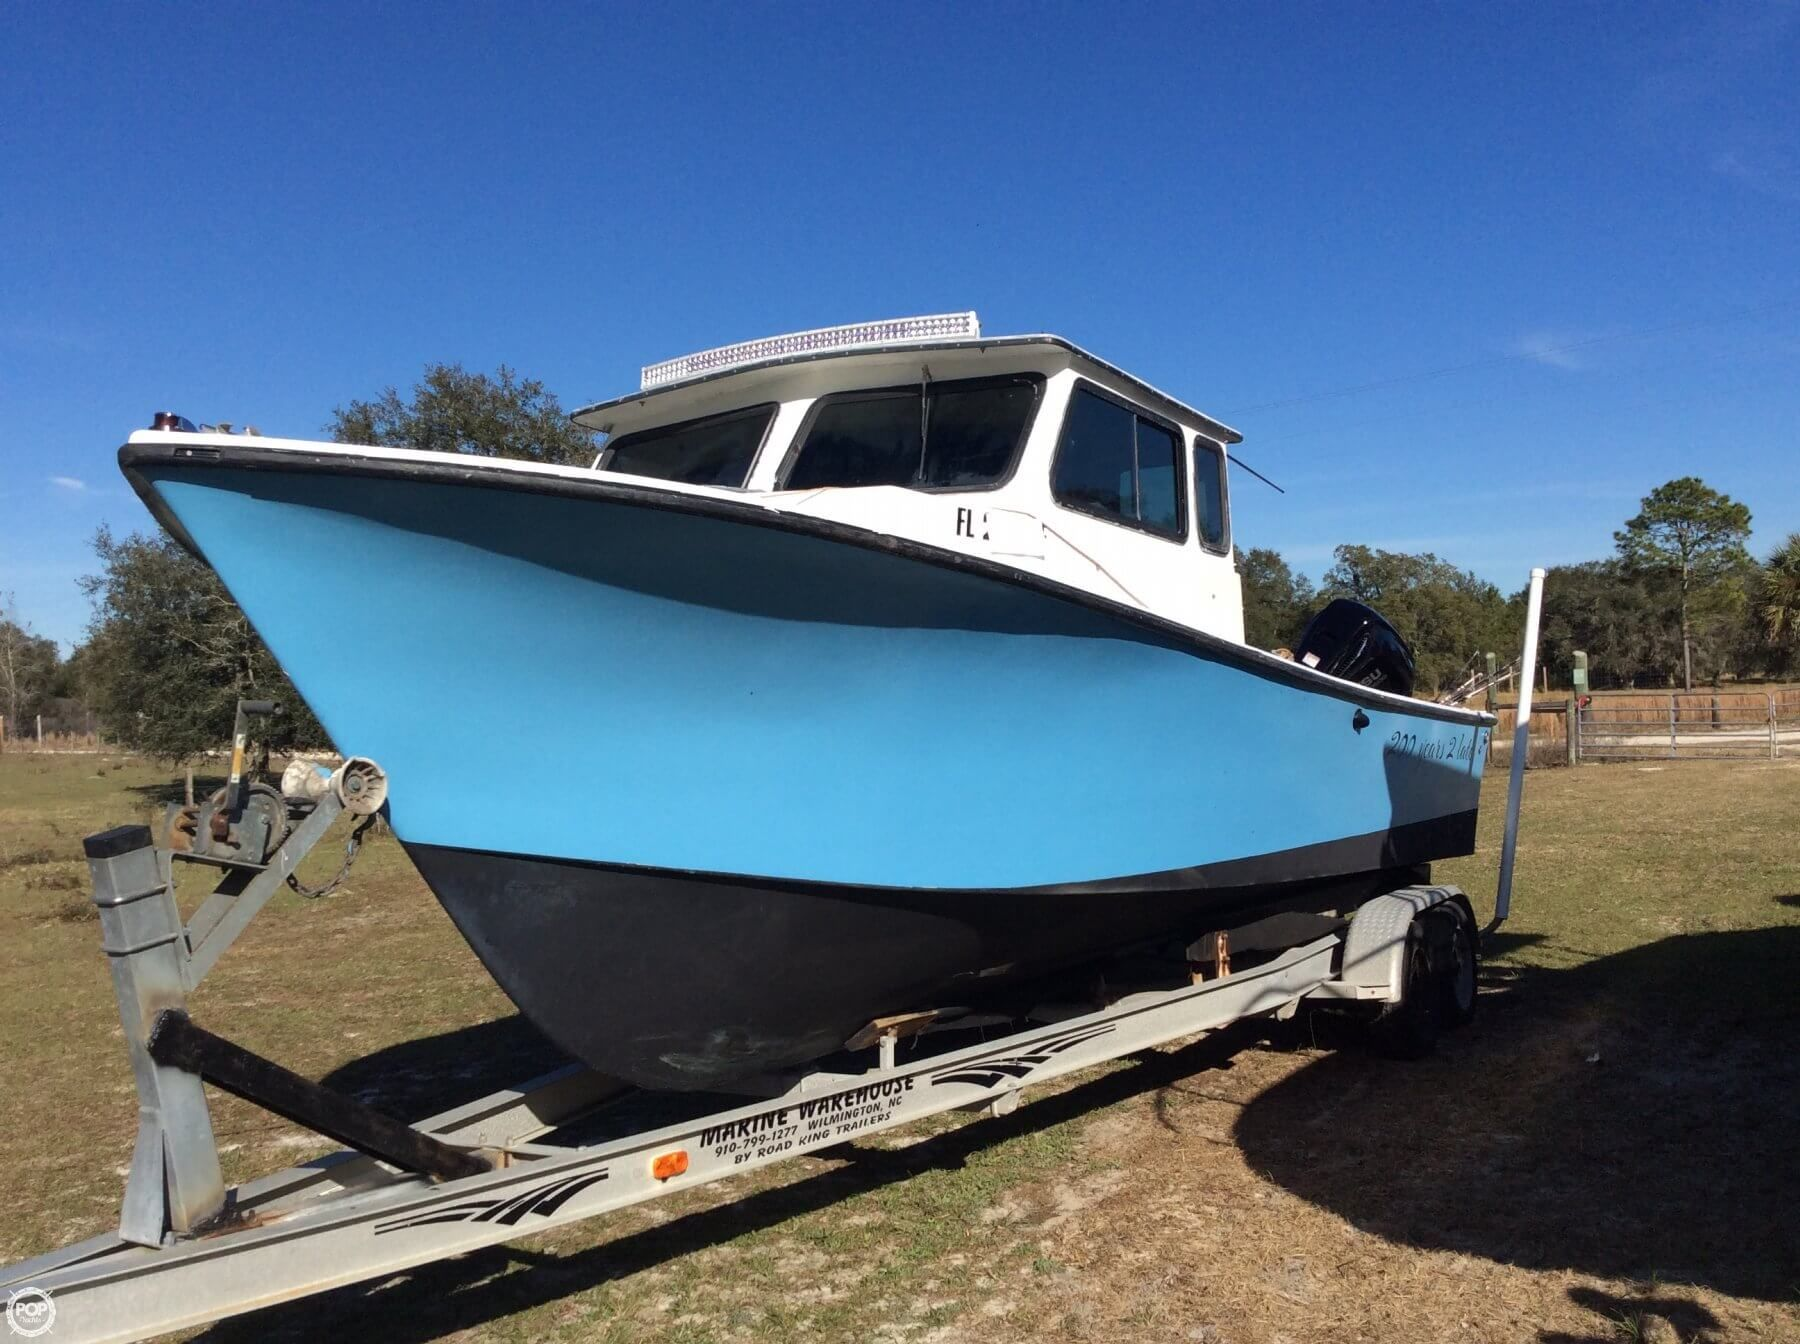 Refurbished C Hawk All New Electronics New 2018 Tohatsu 250 Hp Only 6 Hrs Old Town Florida Charter Boat Boat